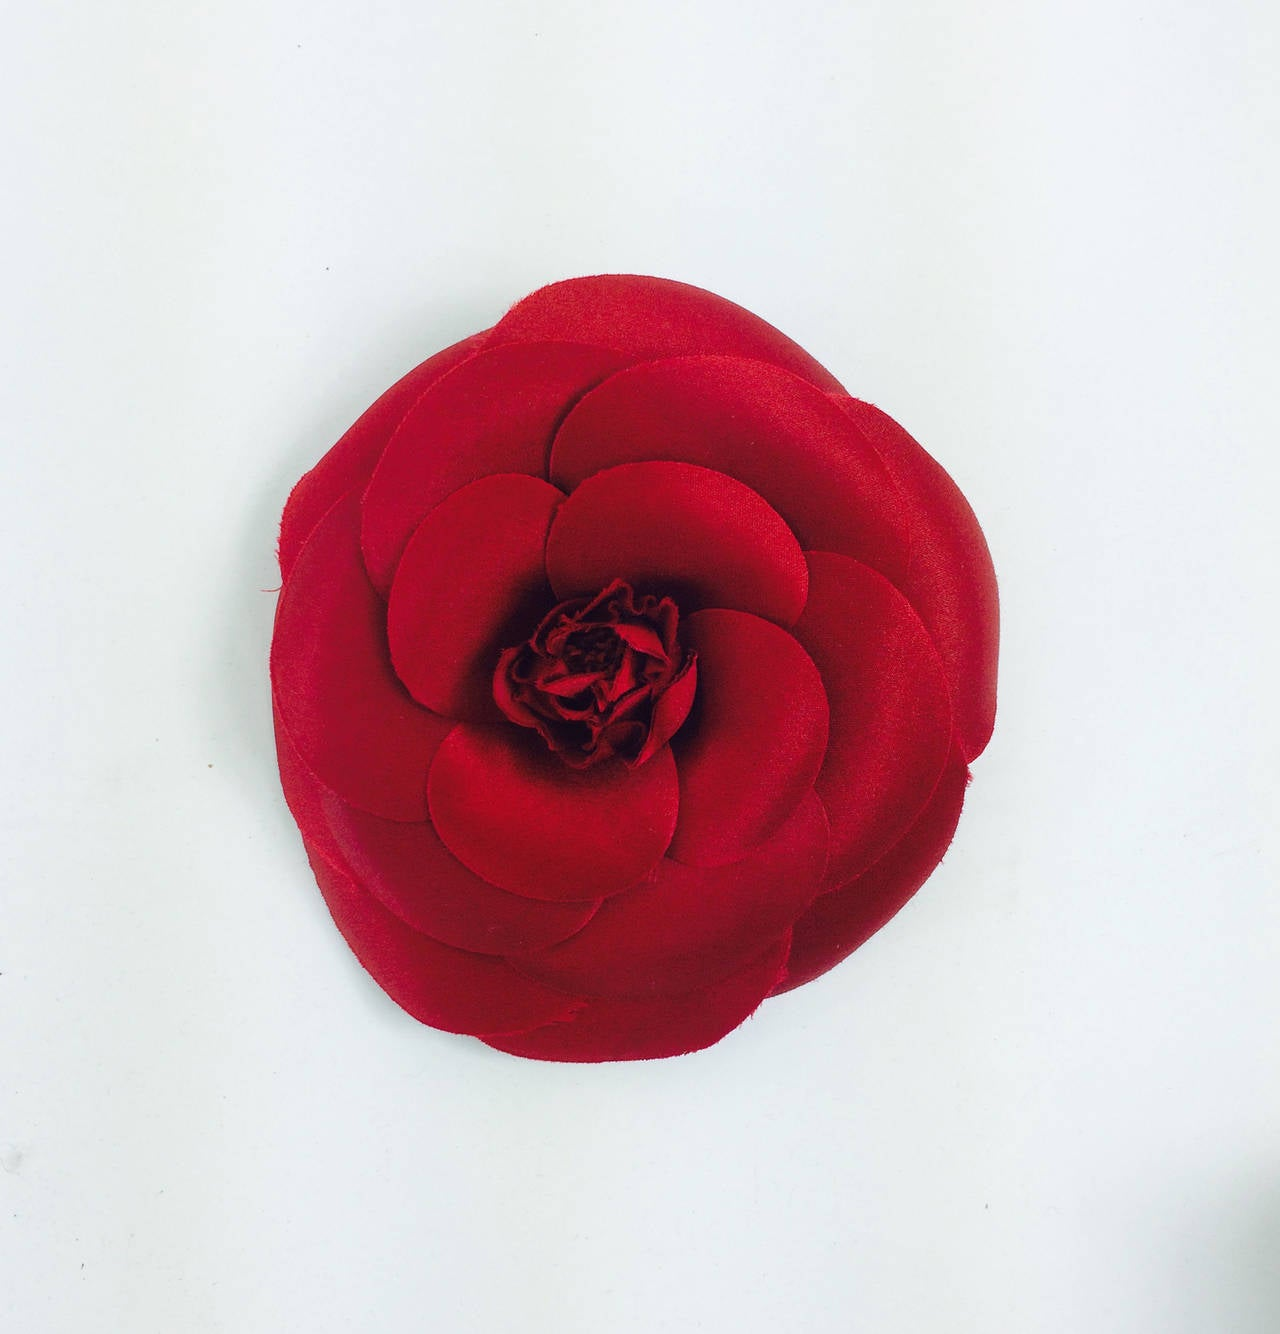 Chanel large deep red silk camellia flower pin in box 2